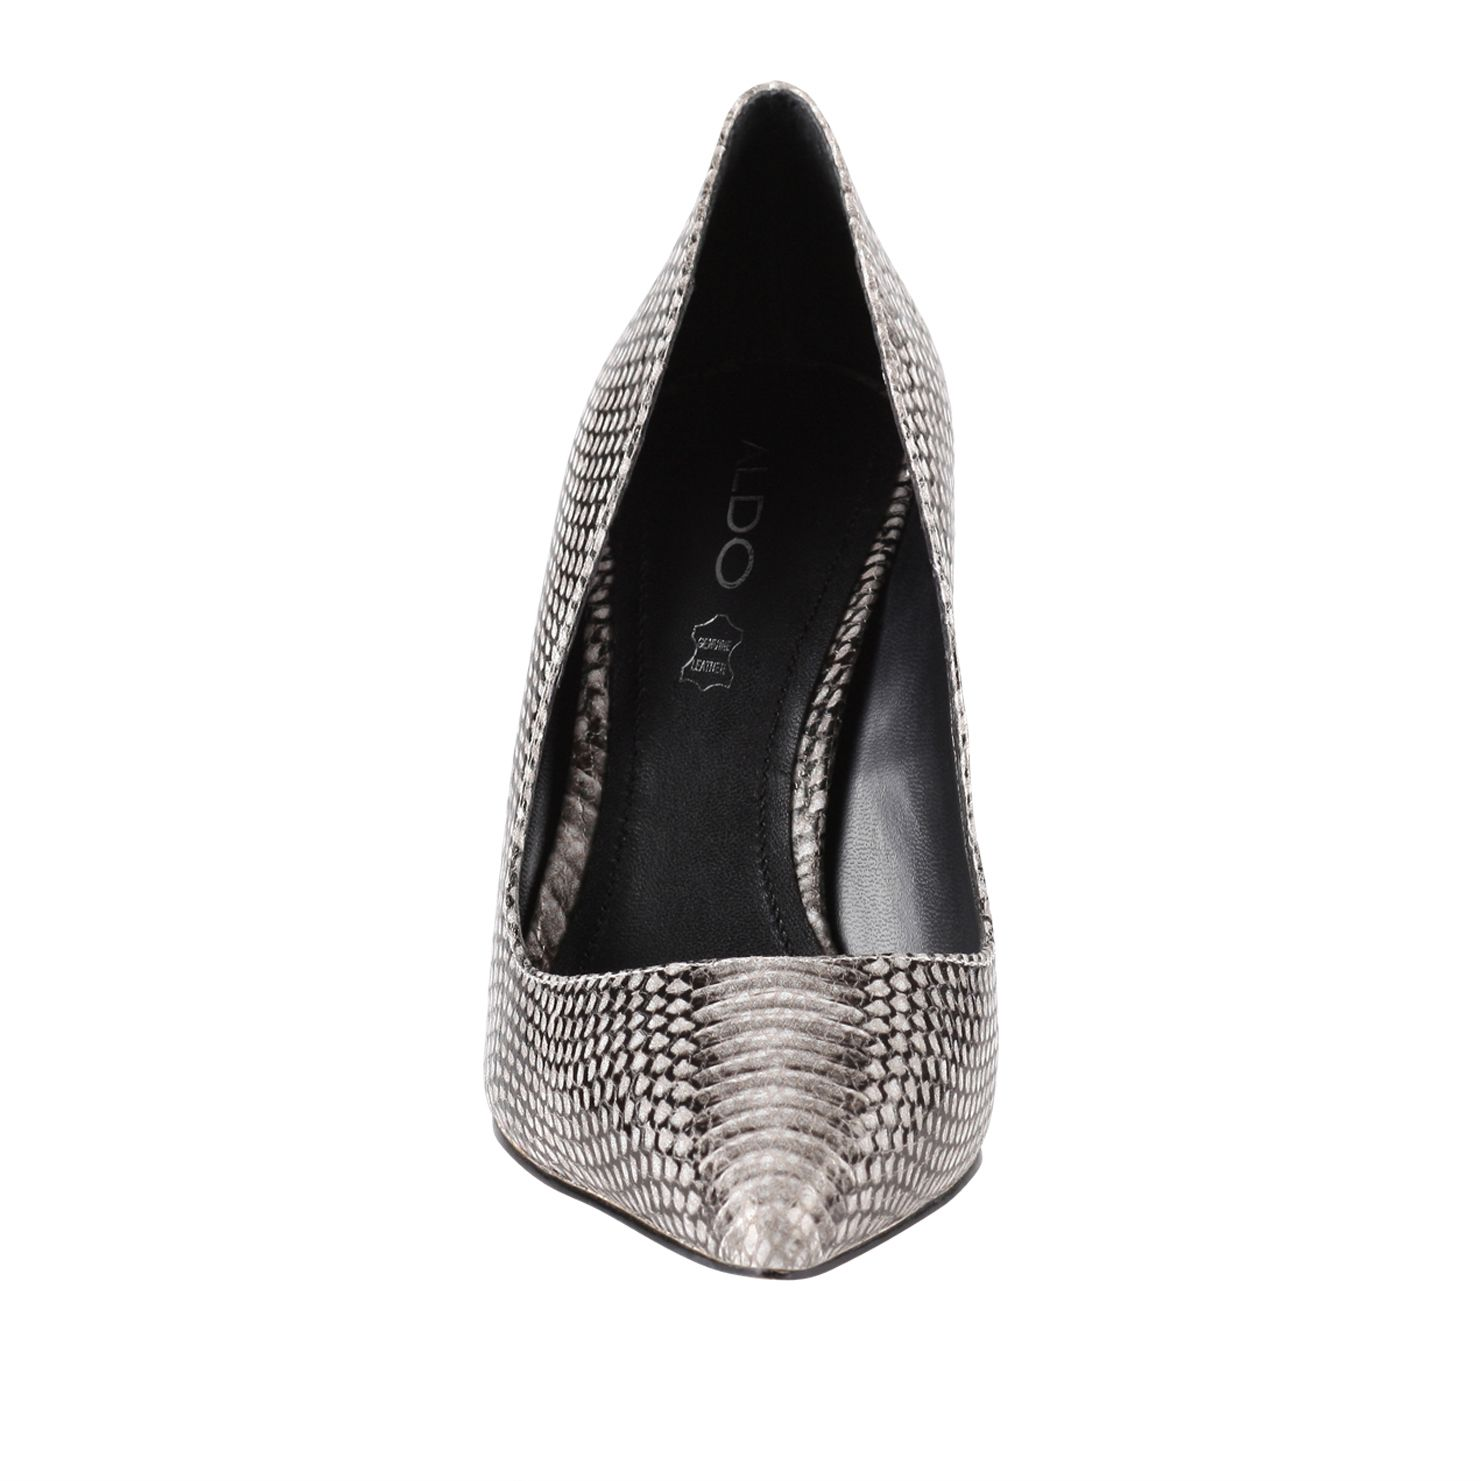 Baulch stilleto court shoes